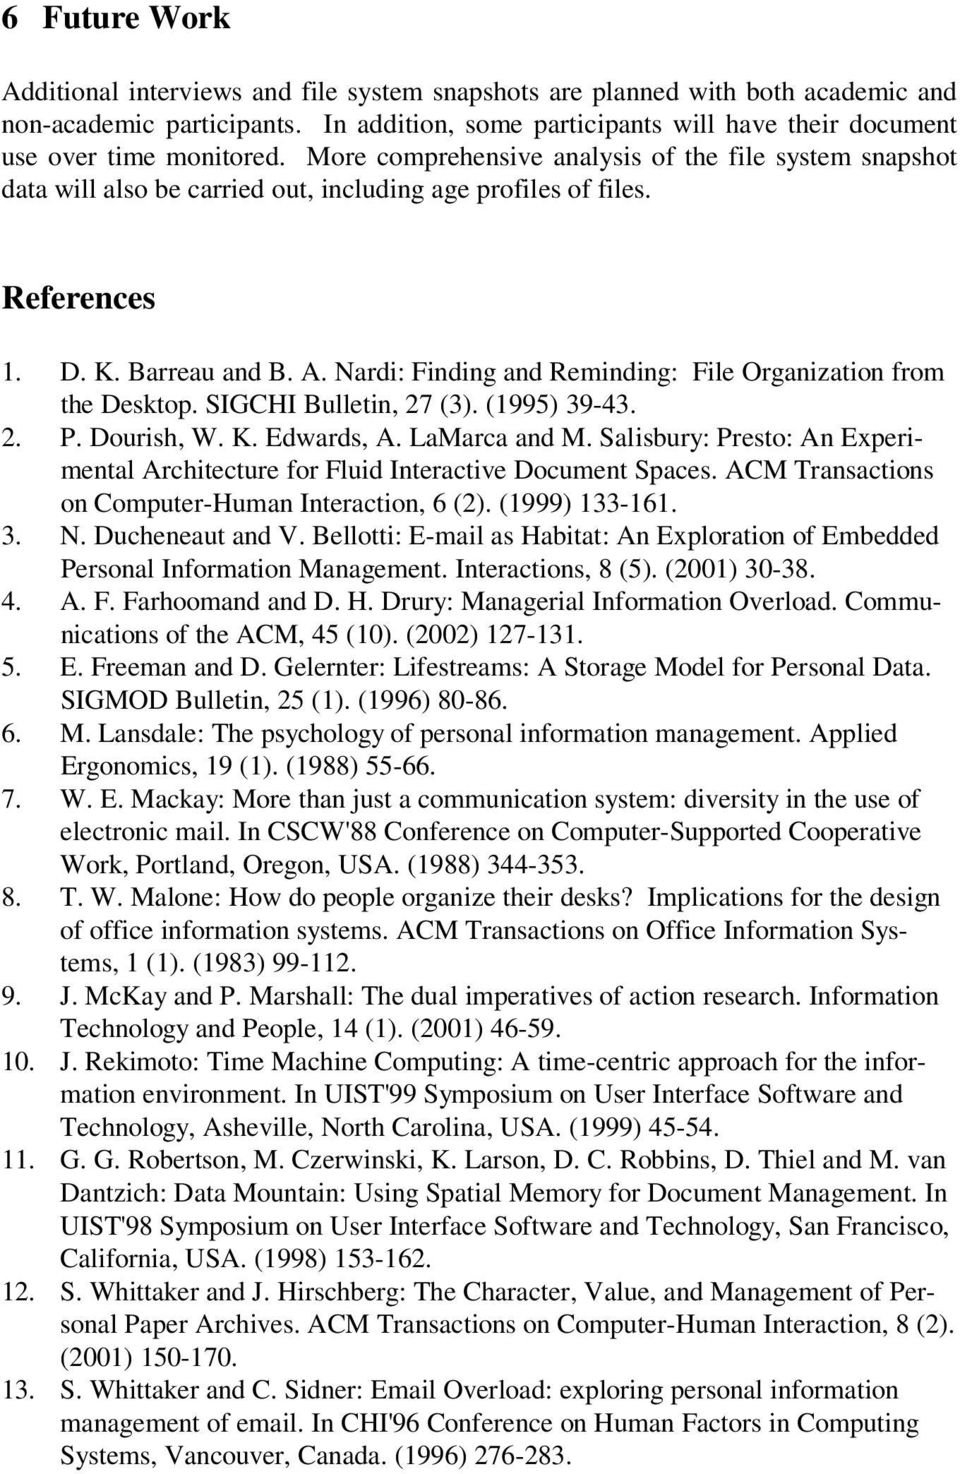 References 1. D. K. Barreau and B. A. Nardi: Finding and Reminding: File Organization from the Desktop. SIGCHI Bulletin, 27 (3). (1995) 39-43. 2. P. Dourish, W. K. Edwards, A. LaMarca and M.